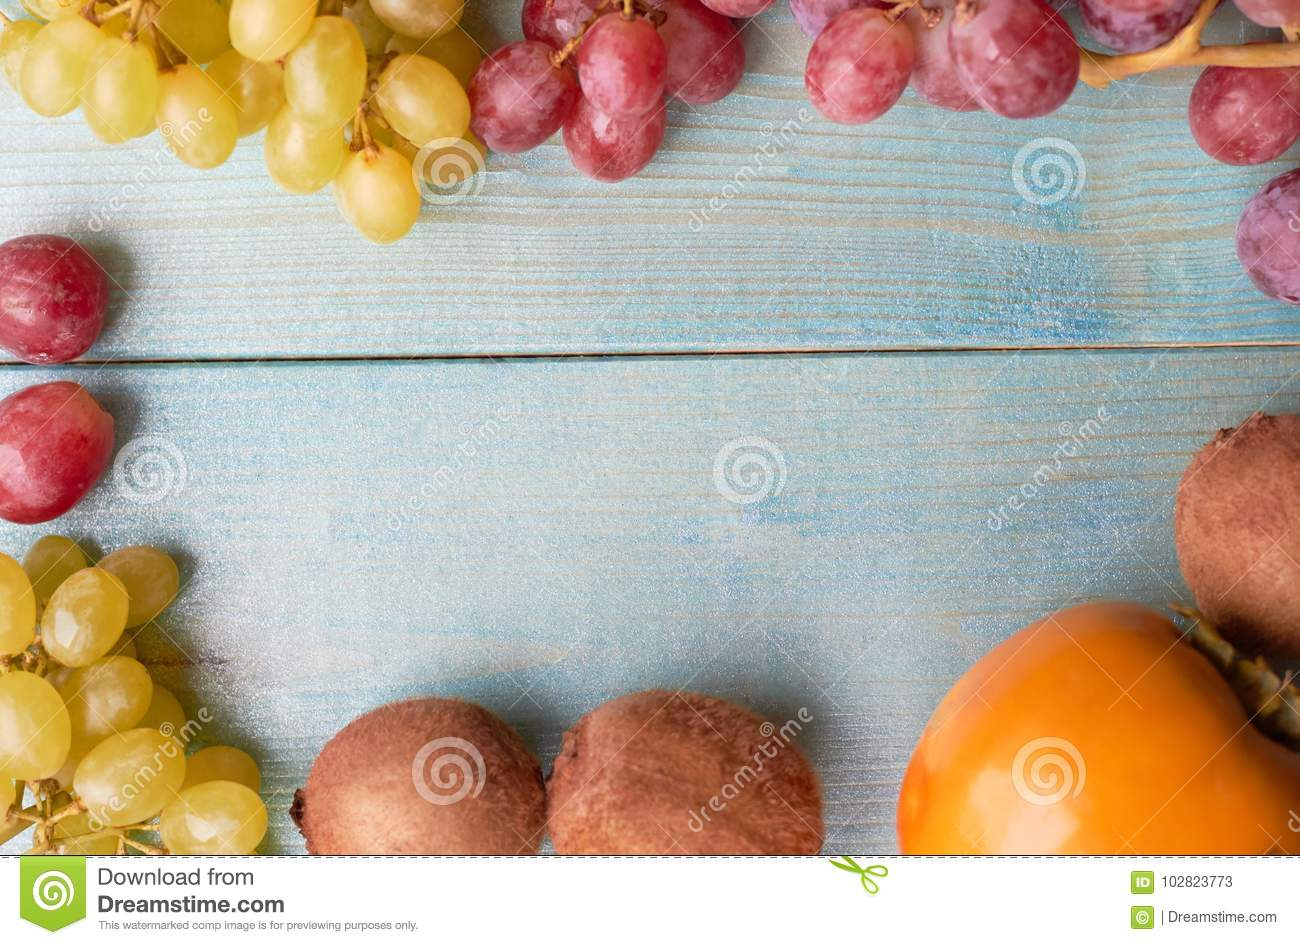 Background of juicy fruits